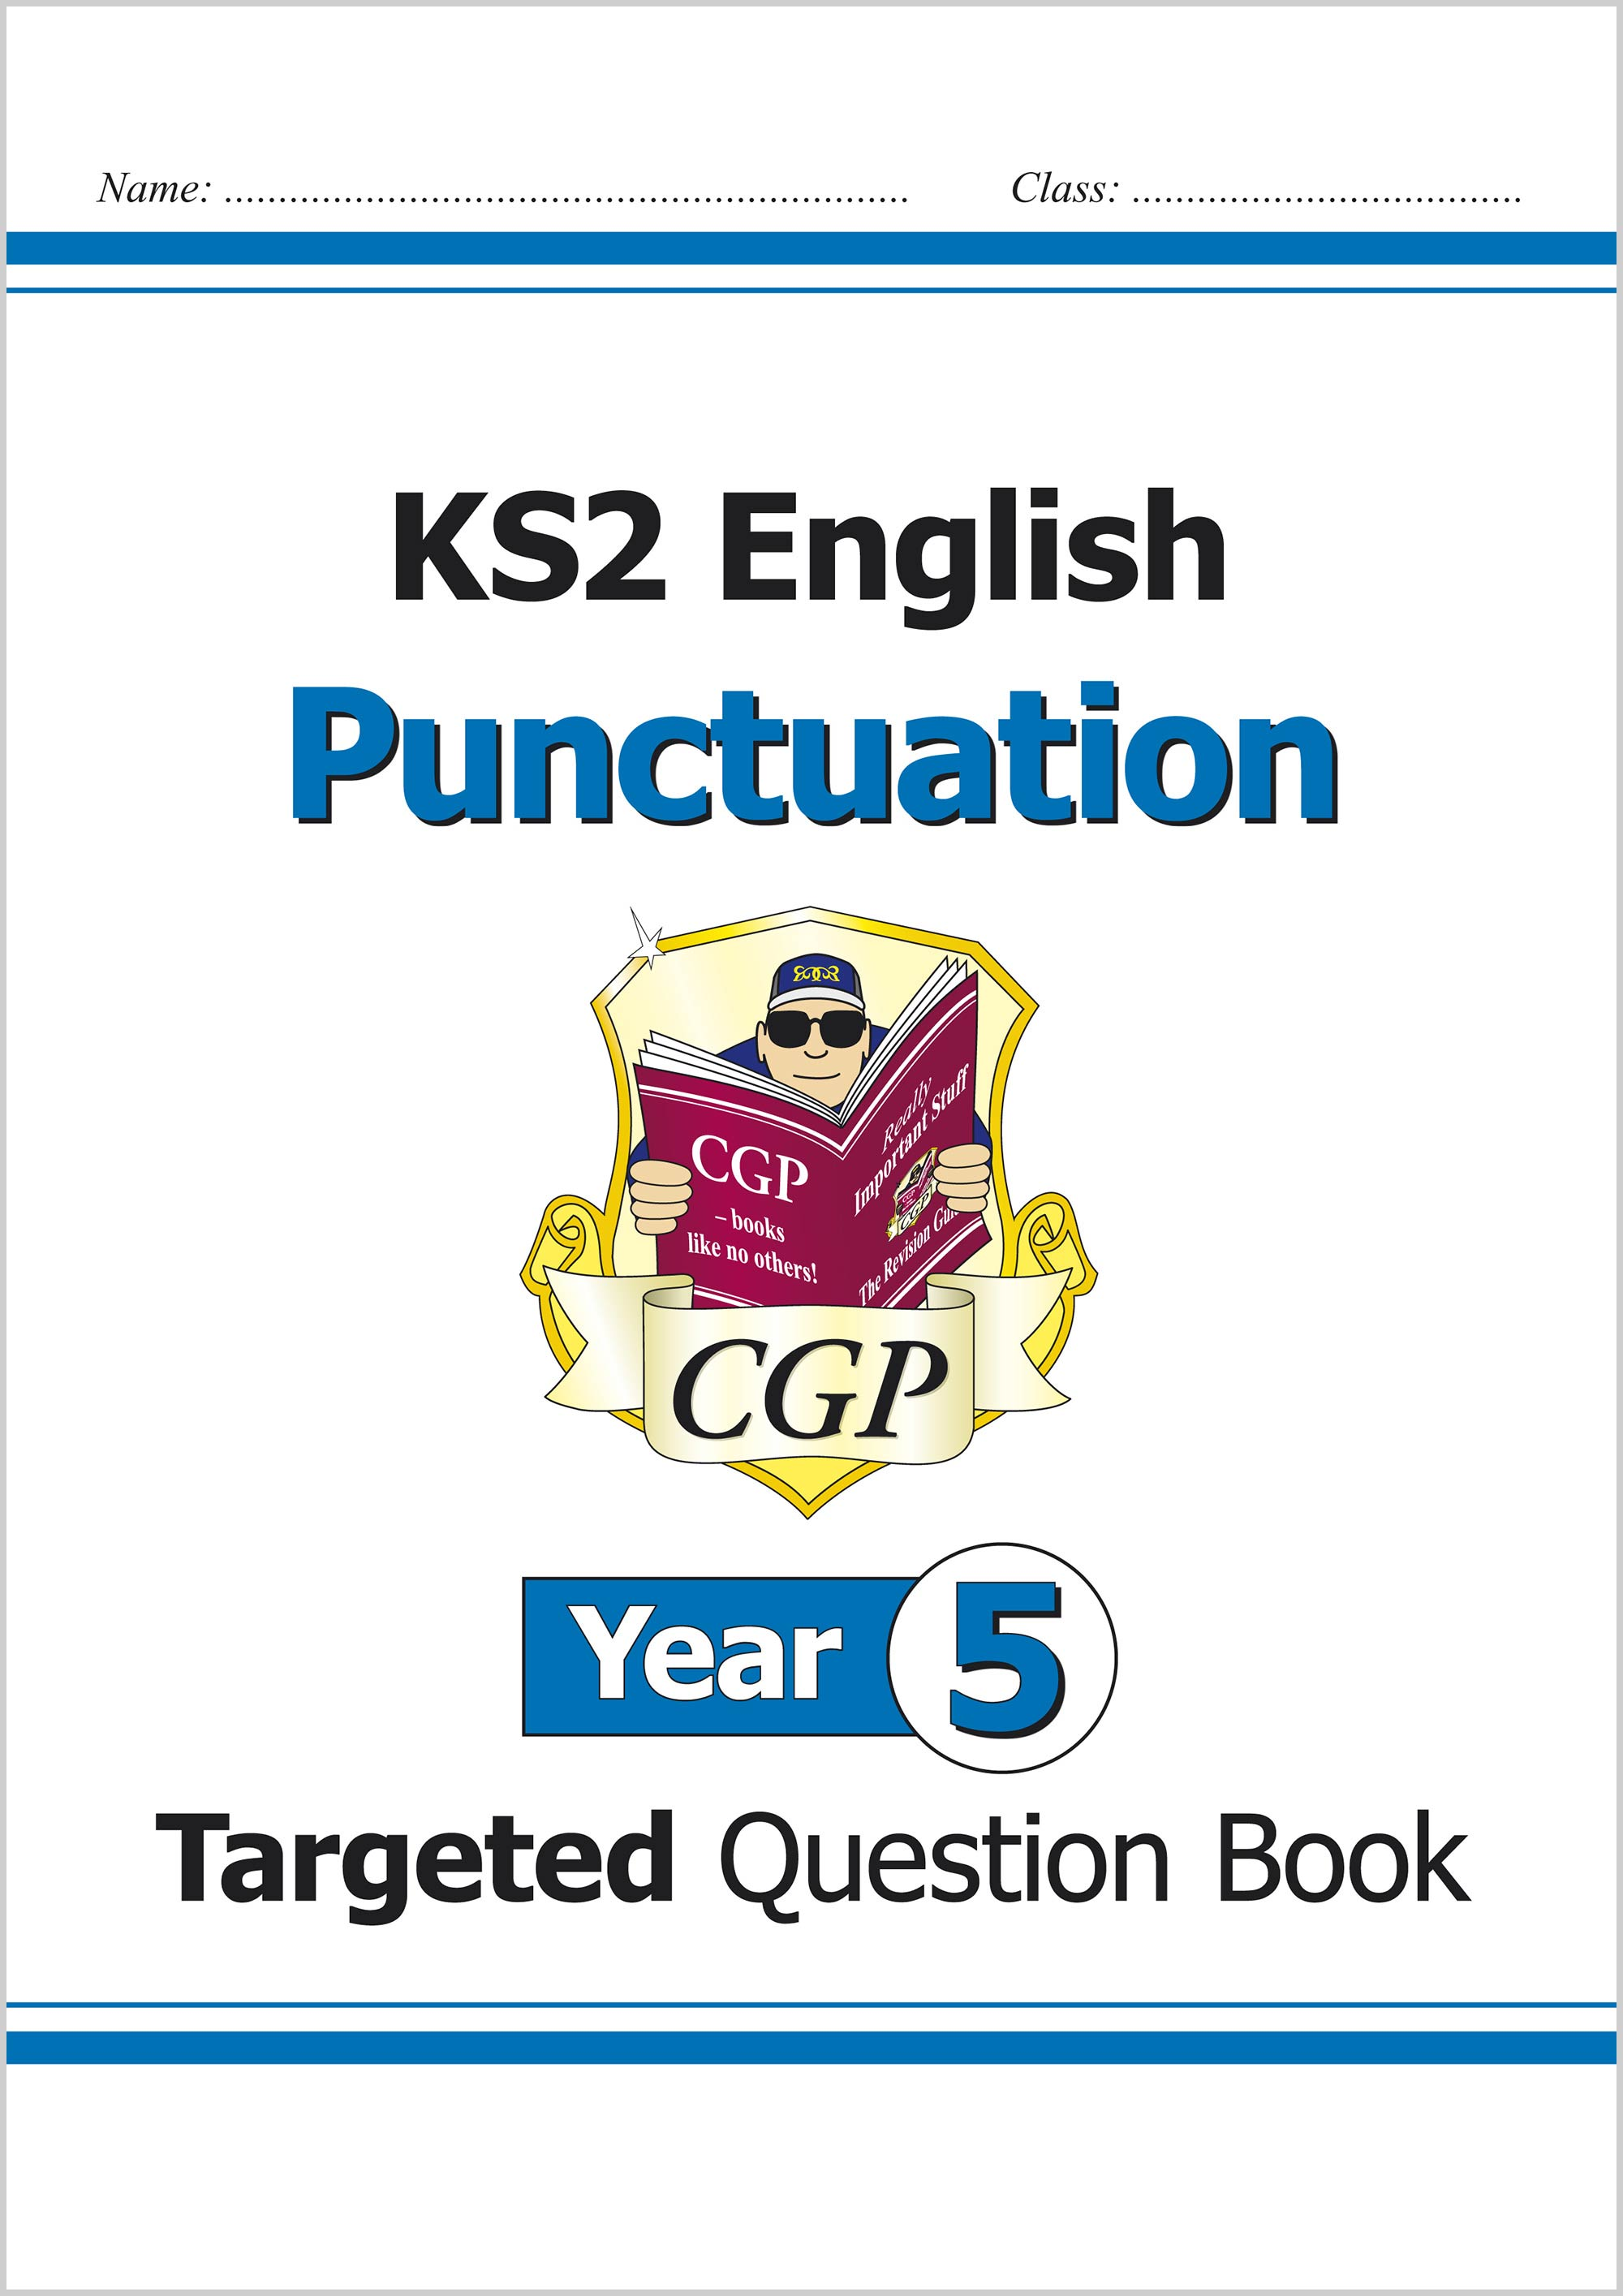 E5PW21 - KS2 English Targeted Question Book: Punctuation - Year 5